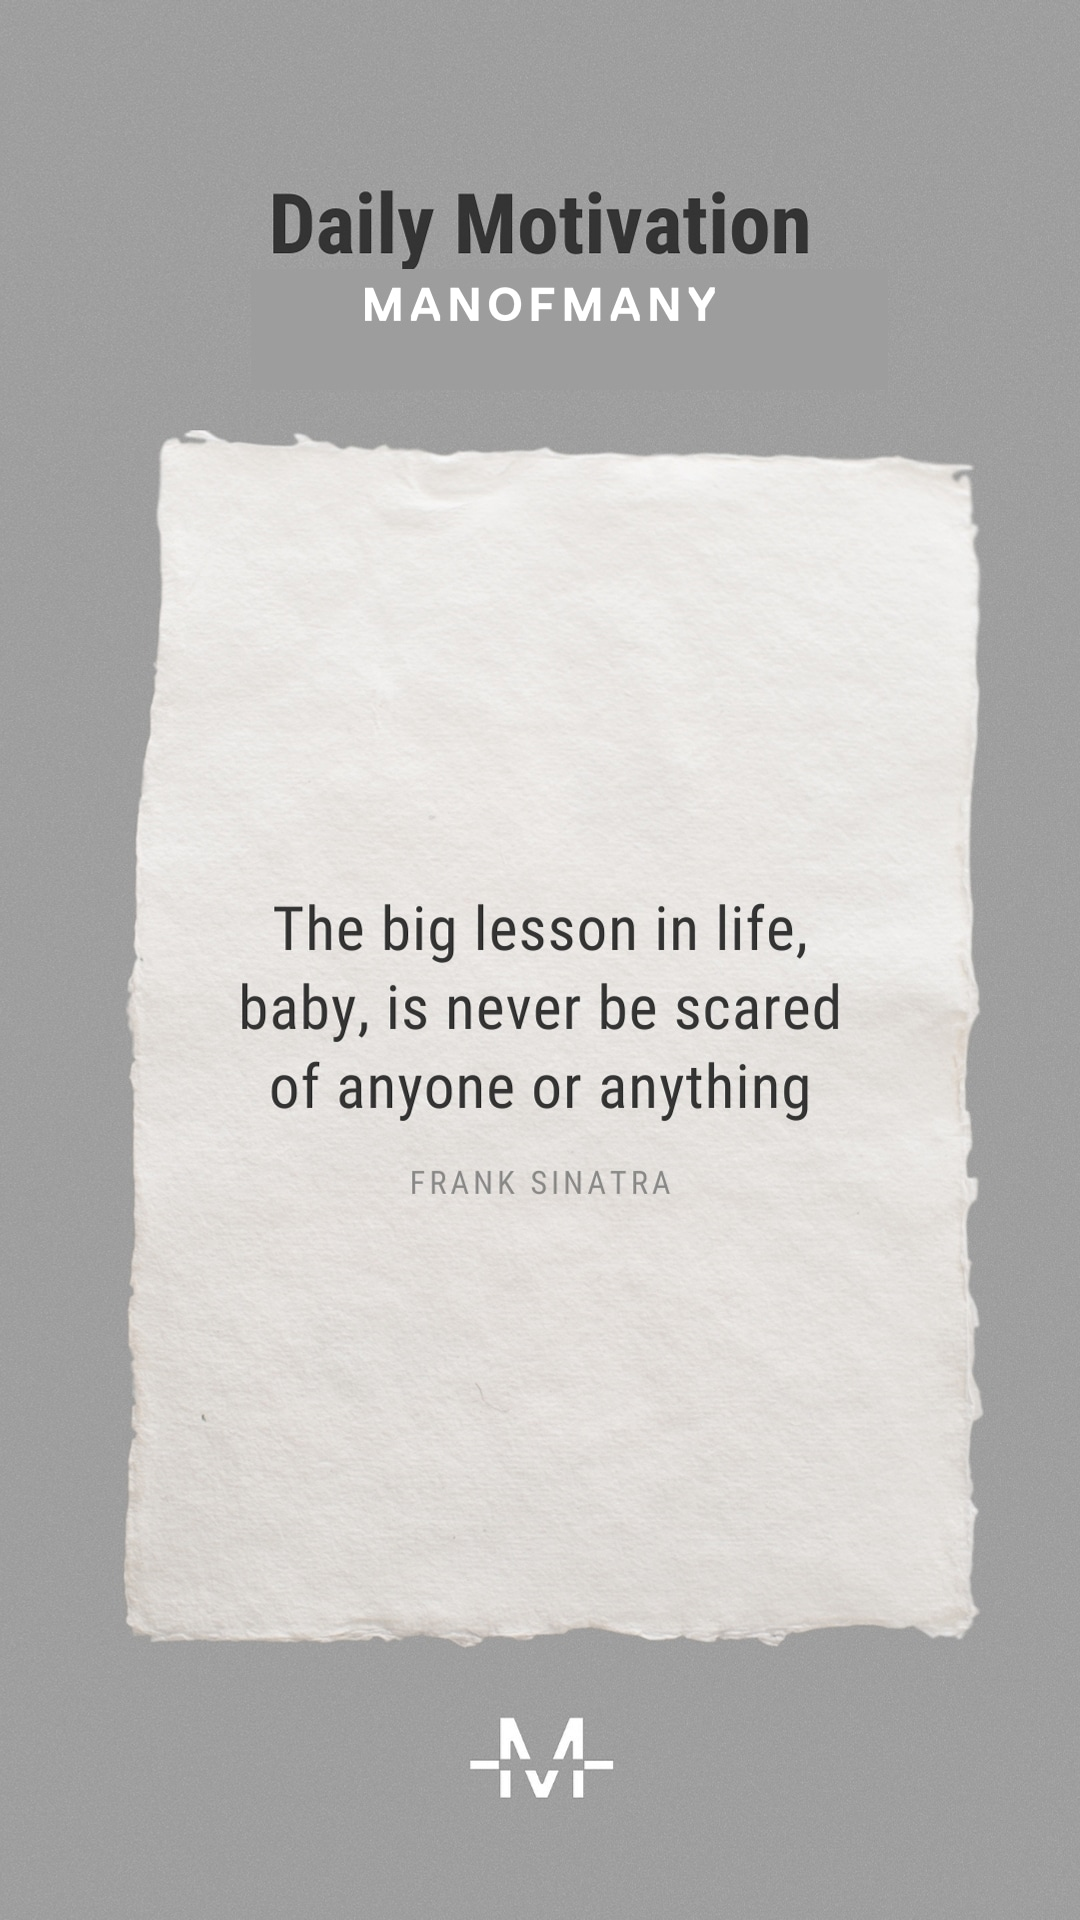 The big lesson in life, baby, is never be scared of anyone or anything.– Frank Sinatra quote